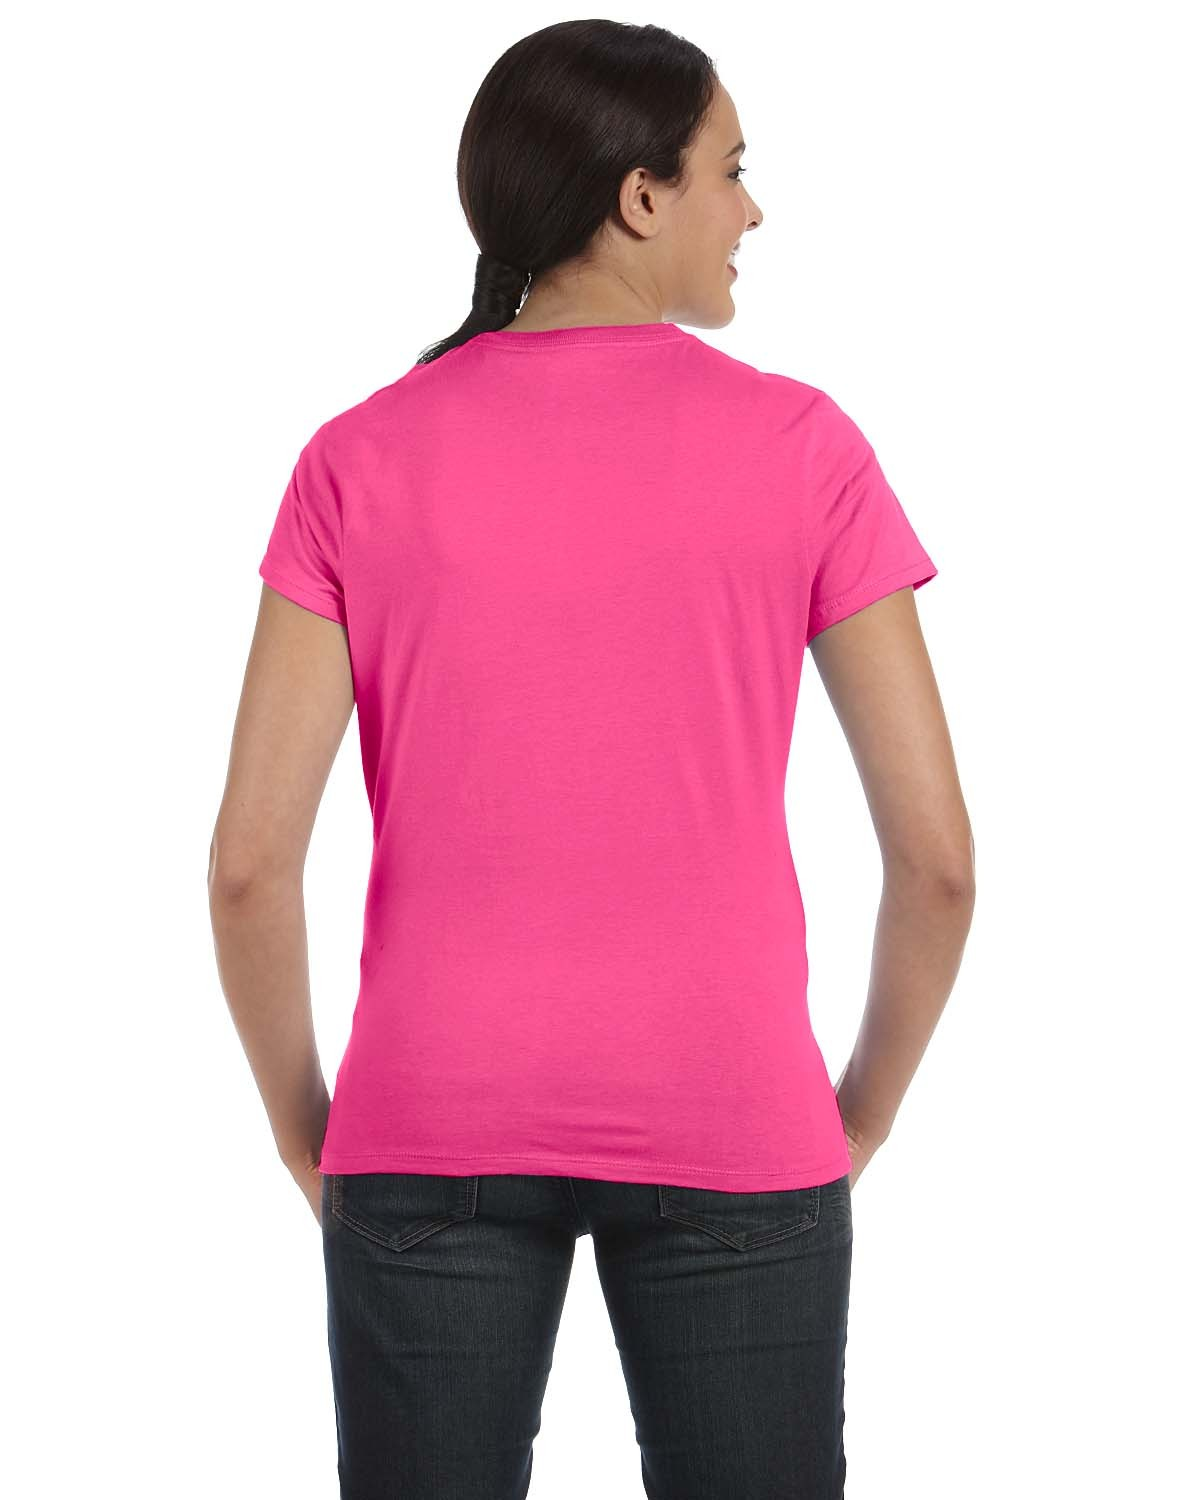 SL04 Hanes WOW PINK